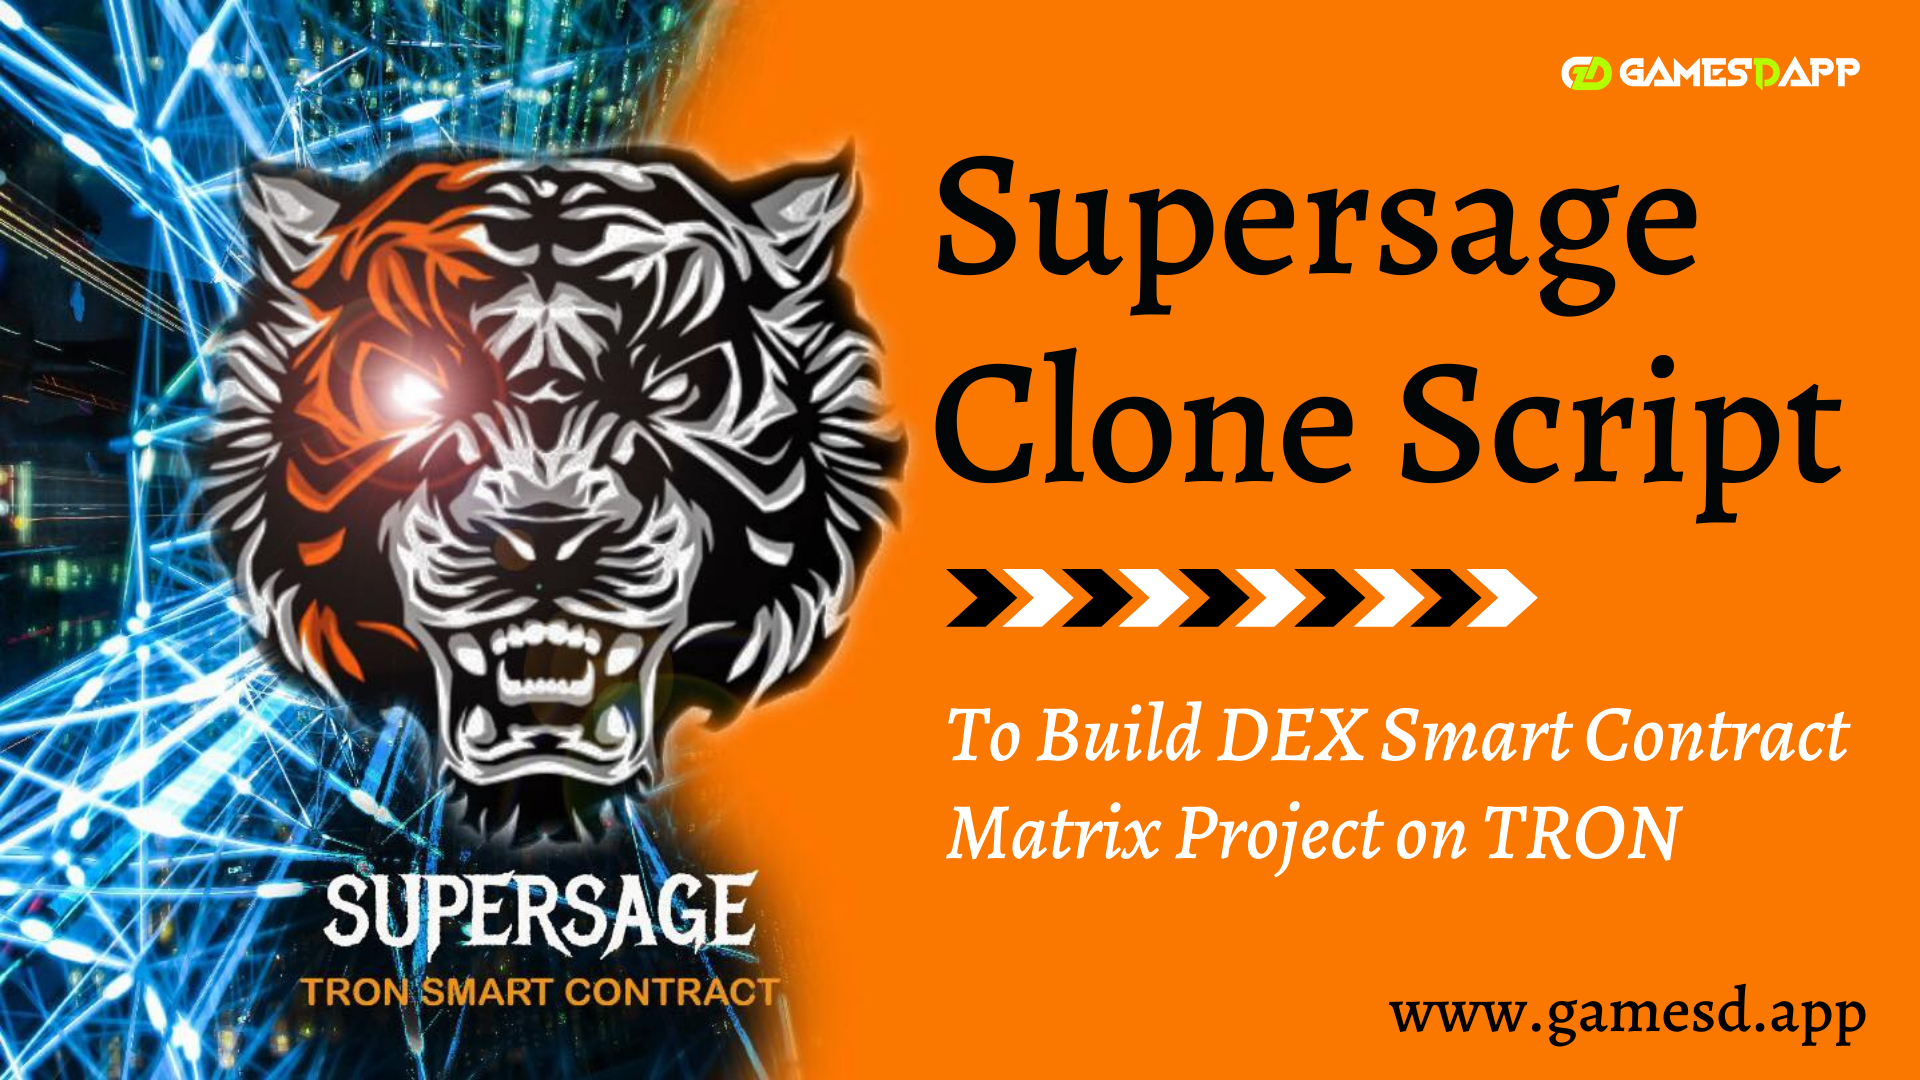 Supersage Clone Script - To Start 100% DEX Smart Contract Matrix Project on TRON Blockchain